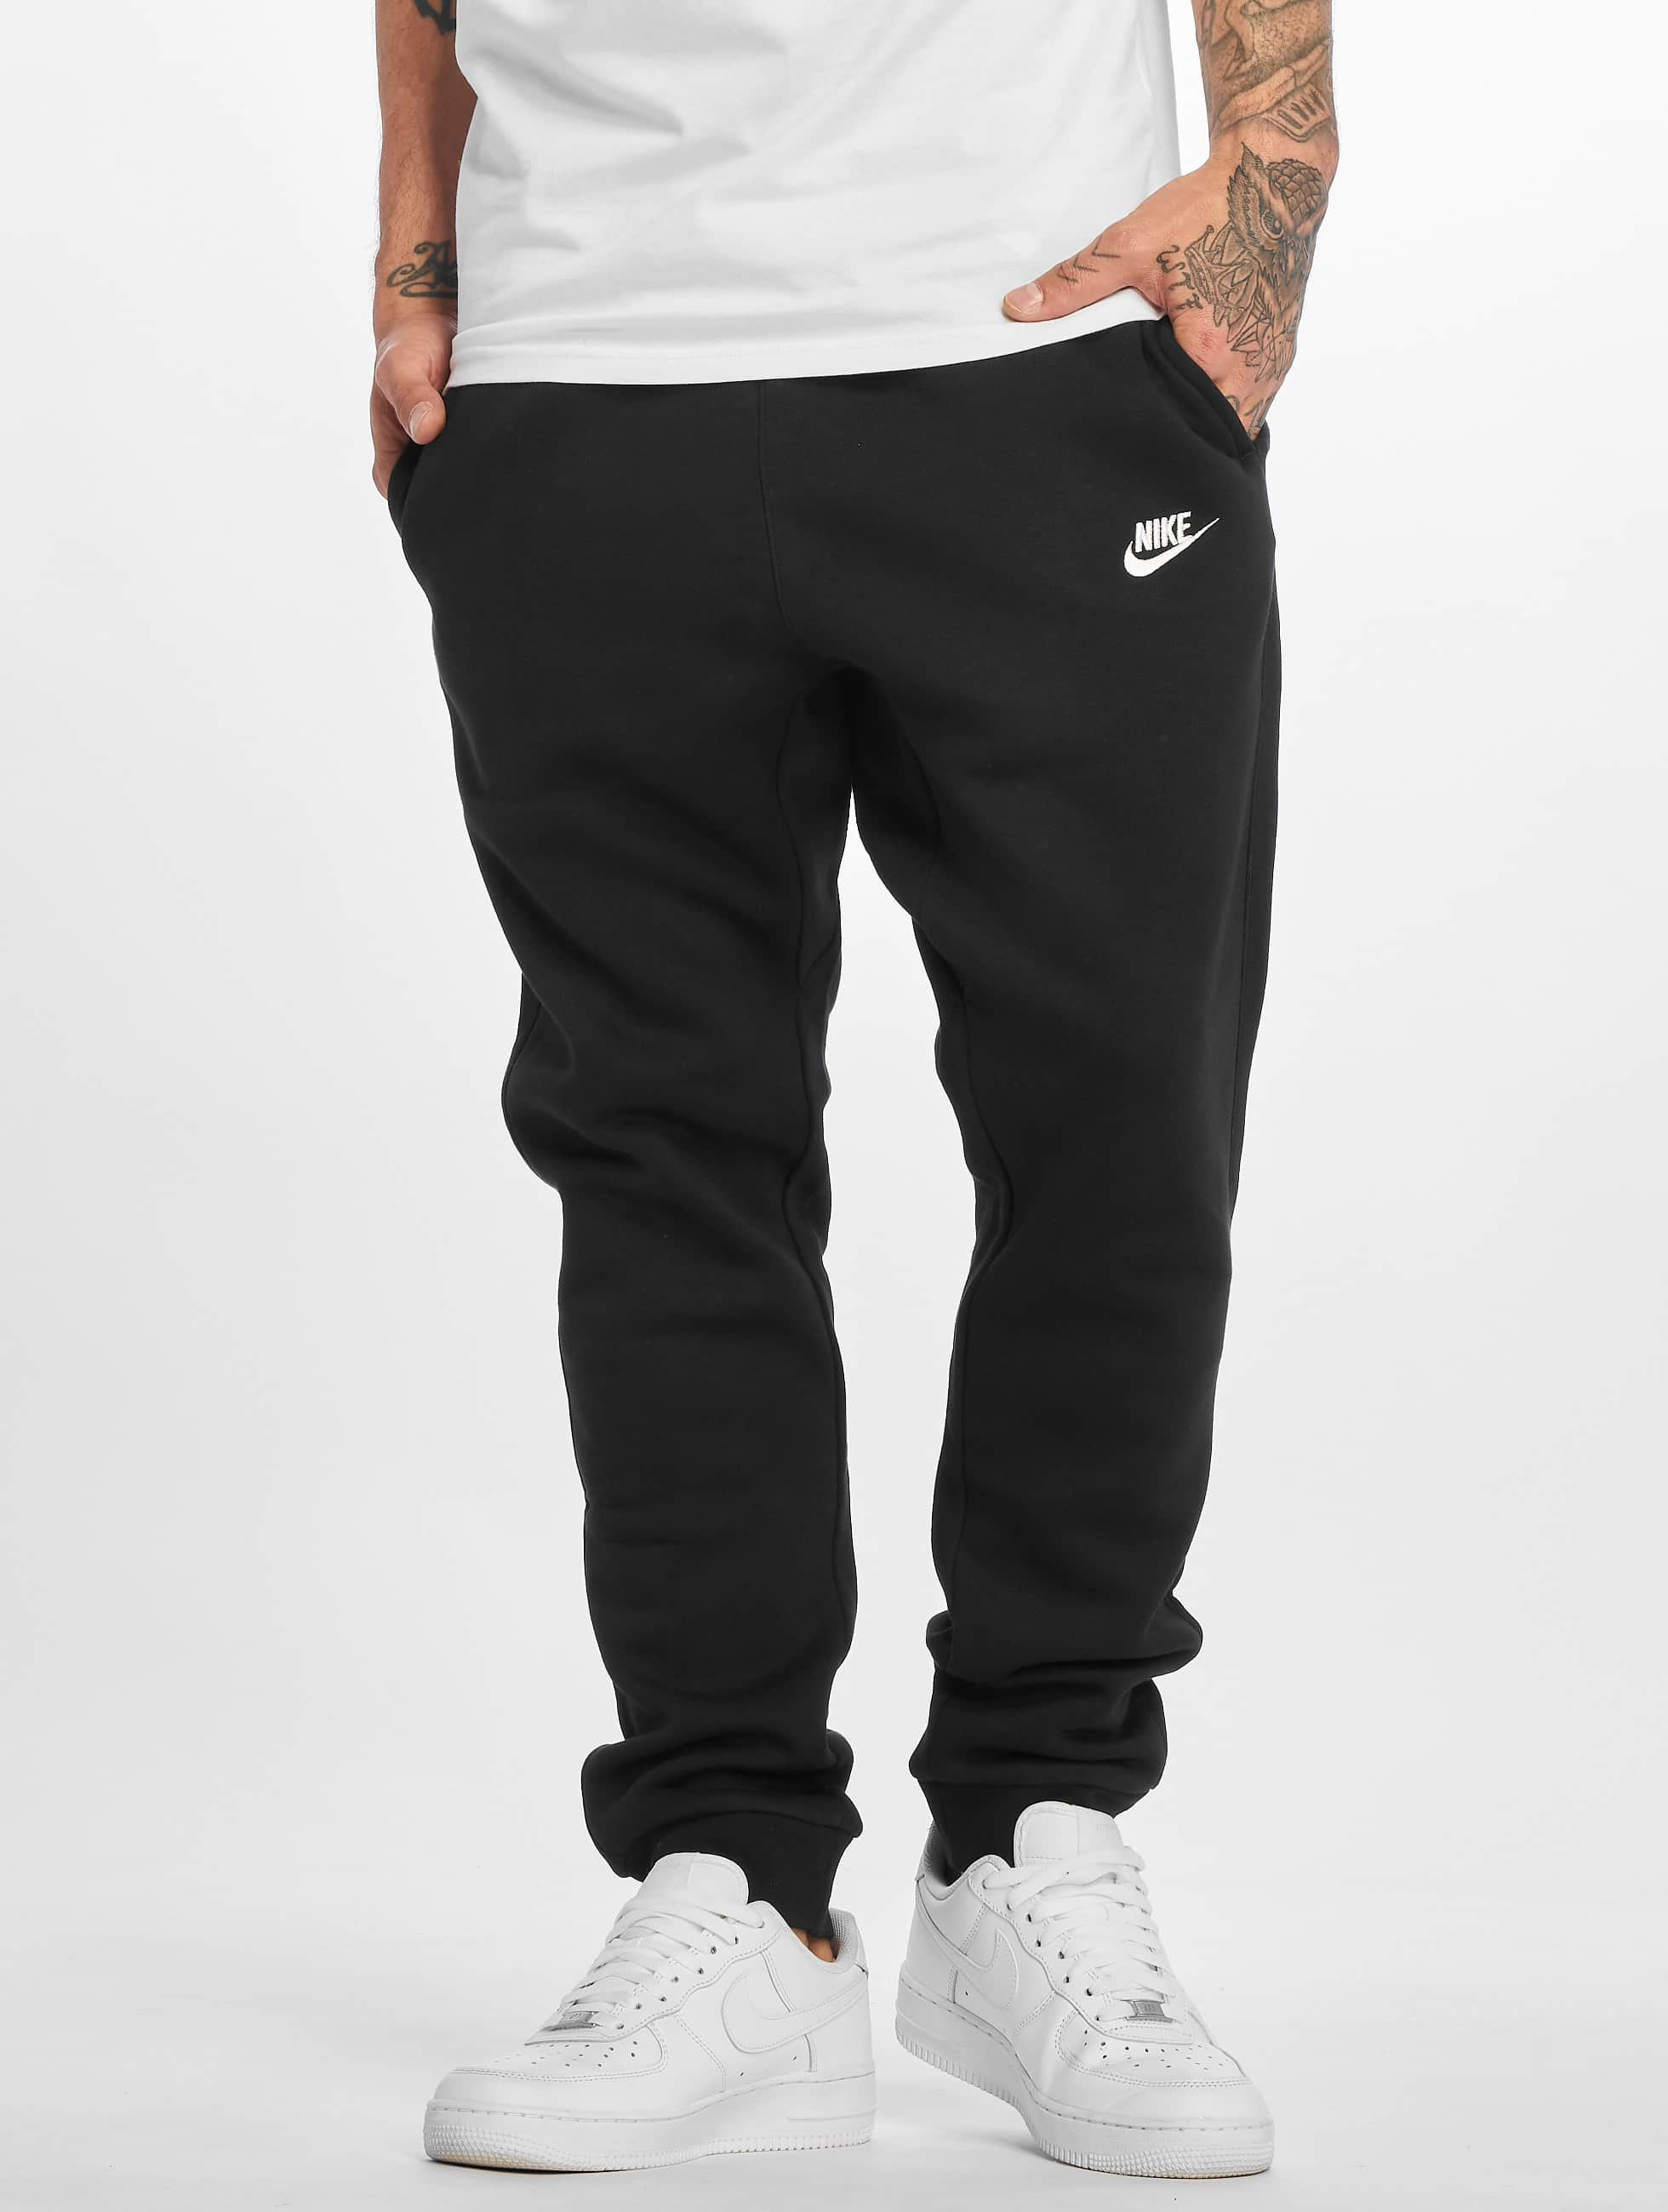 Nike joggingbroek NSW FLC CLUB zwart